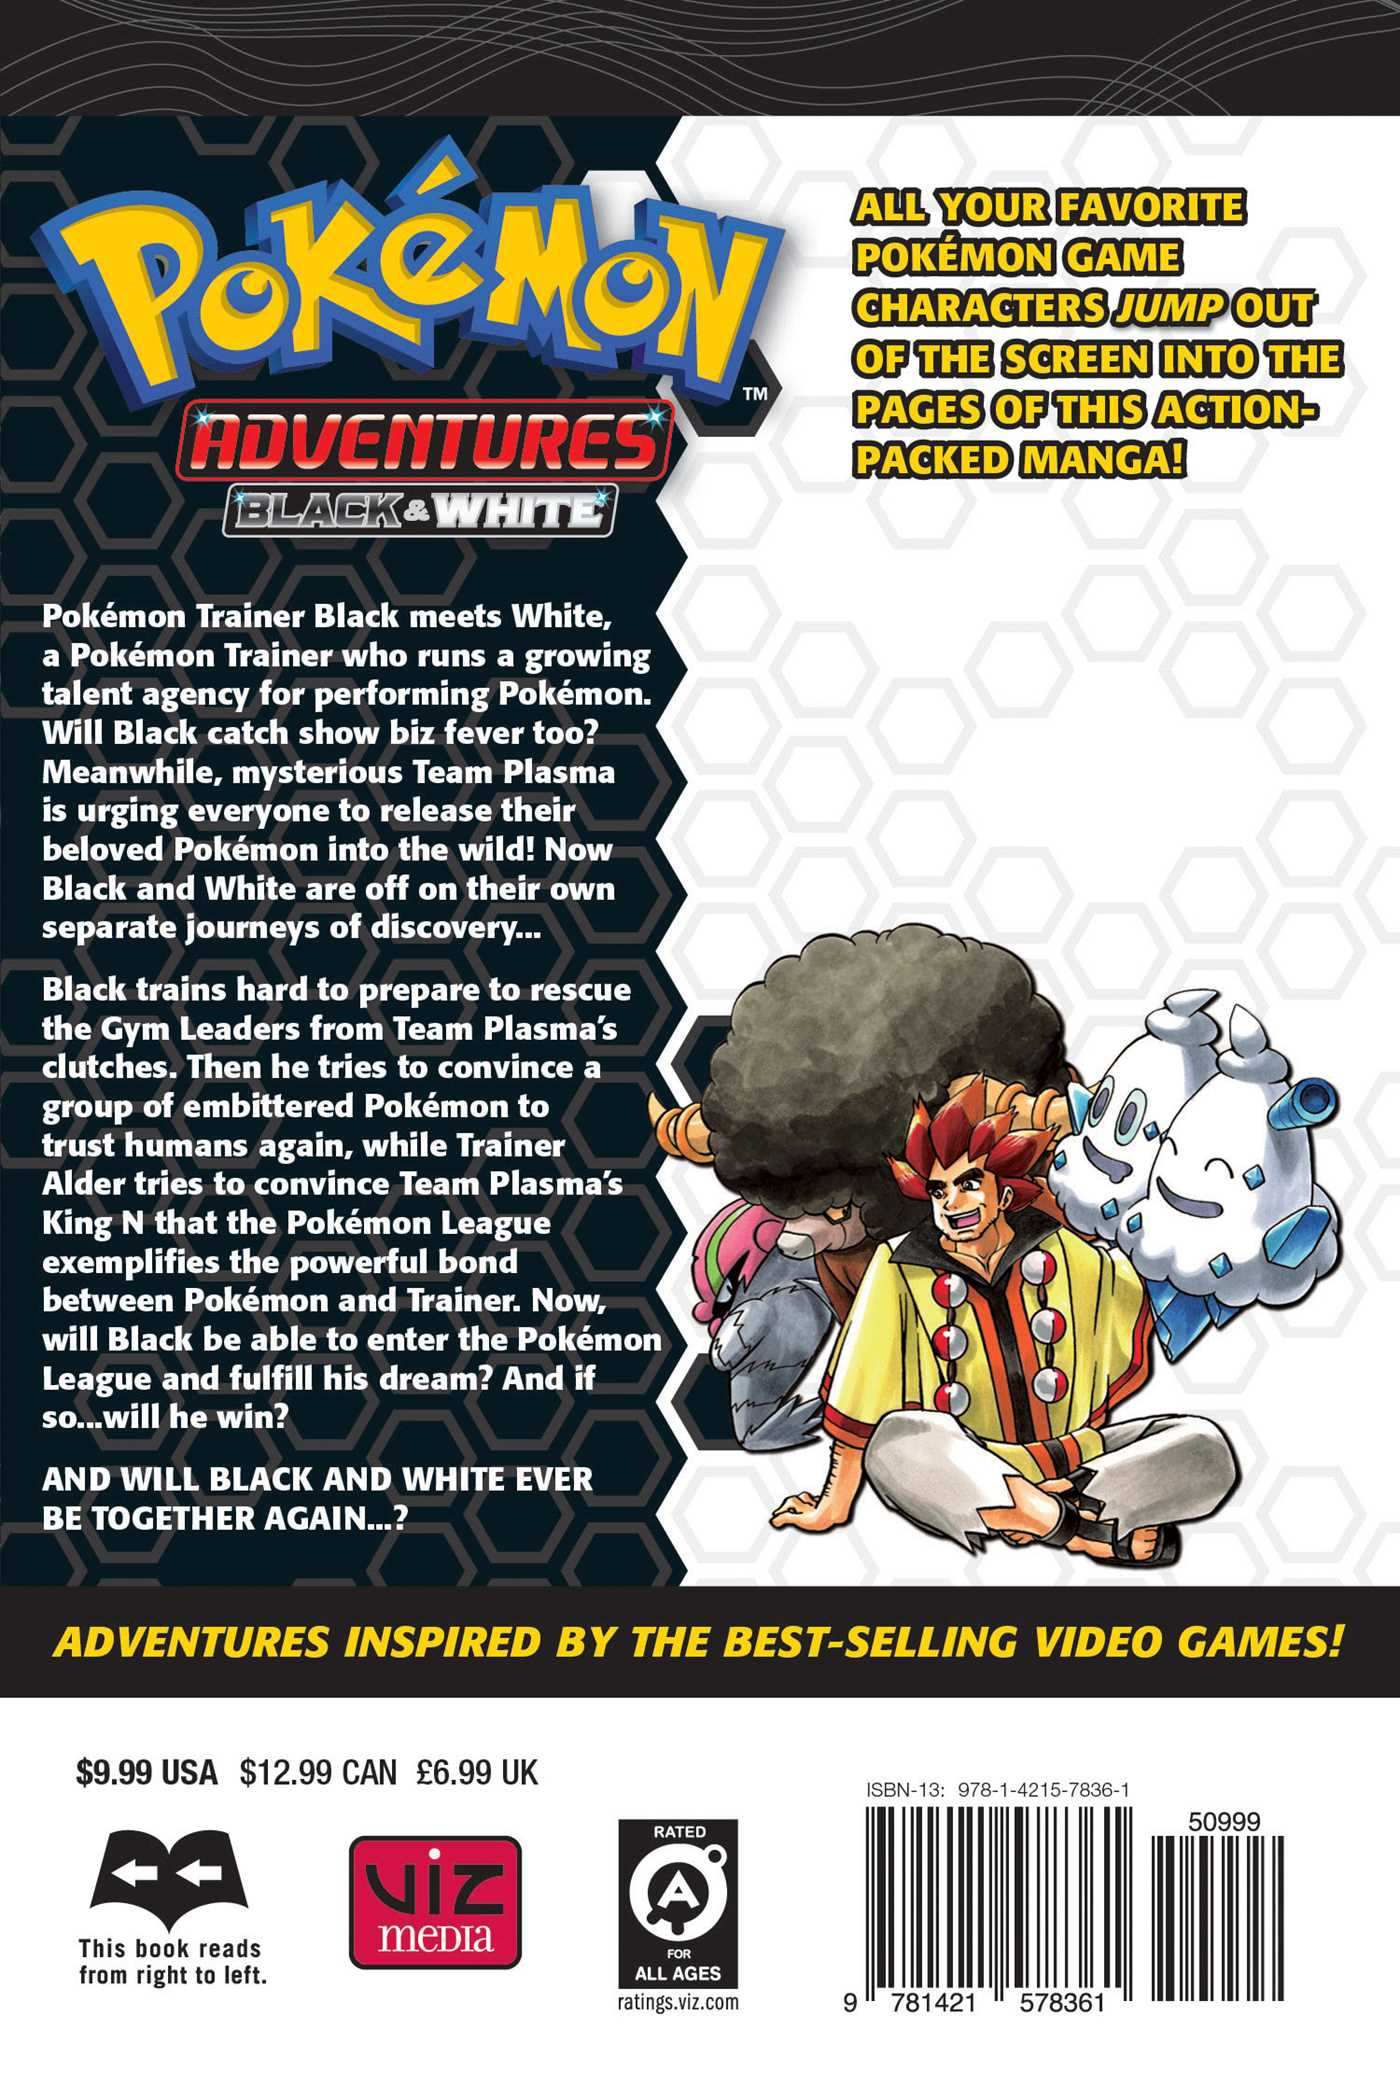 Pokemon-adventures-black-and-white-vol-7-9781421578361_hr-back